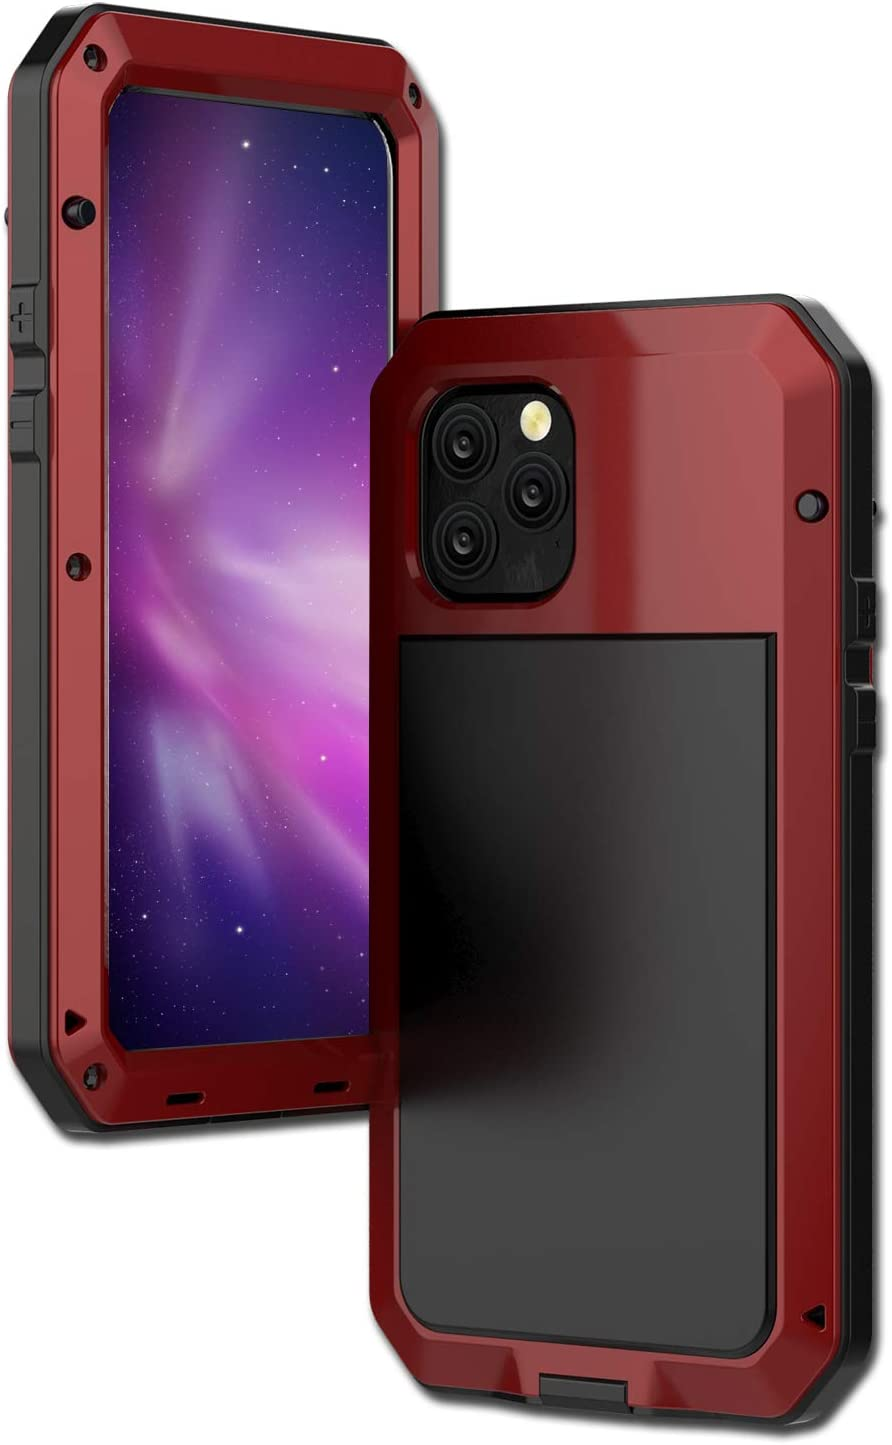 CarterLily iPhone 11 Case, Full Body Shockproof Dustproof Waterproof Aluminum Alloy Metal Gorilla Glass Cover Case for Apple iPhone 11 6.1 inch (Red)